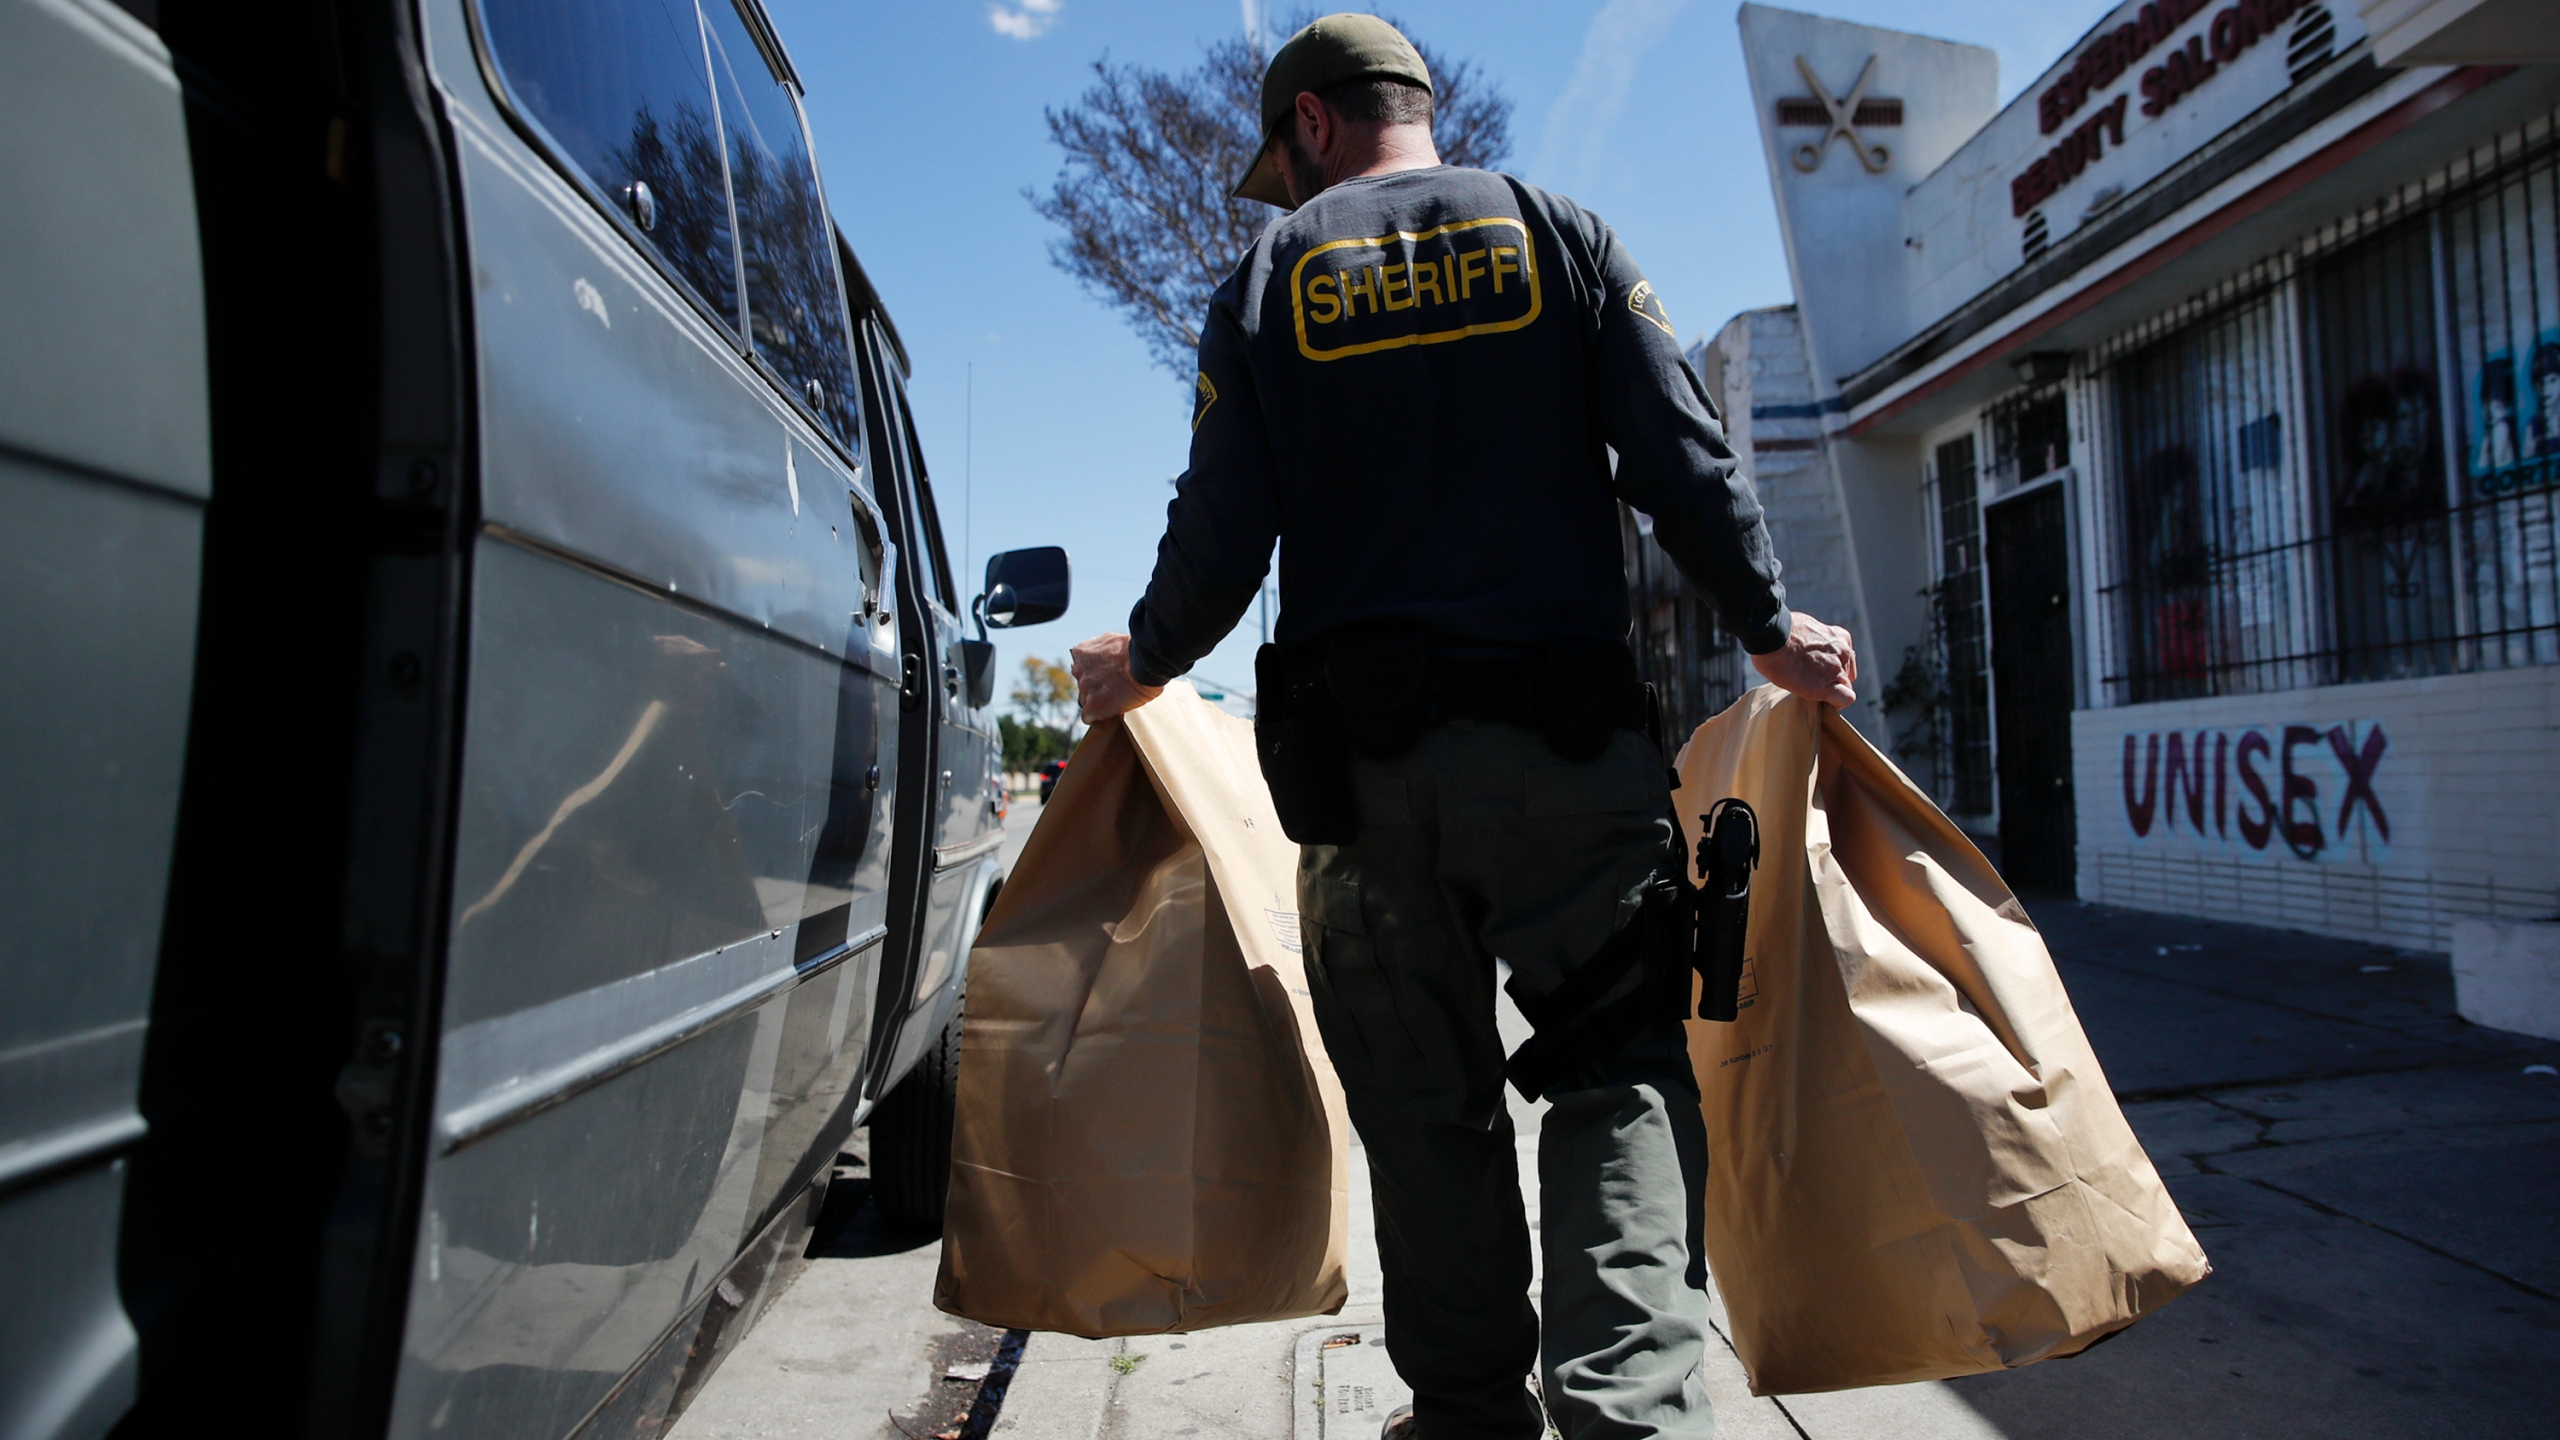 In this March 15, 2018 file photo, an undercover Los Angeles County sheriff's deputy loads two evidence bags into a van after raiding an illegal marijuana dispensary in Compton, one of many California cities where recreational marijuana use remains illegal. (AP Photo/Jae C. Hong, File)